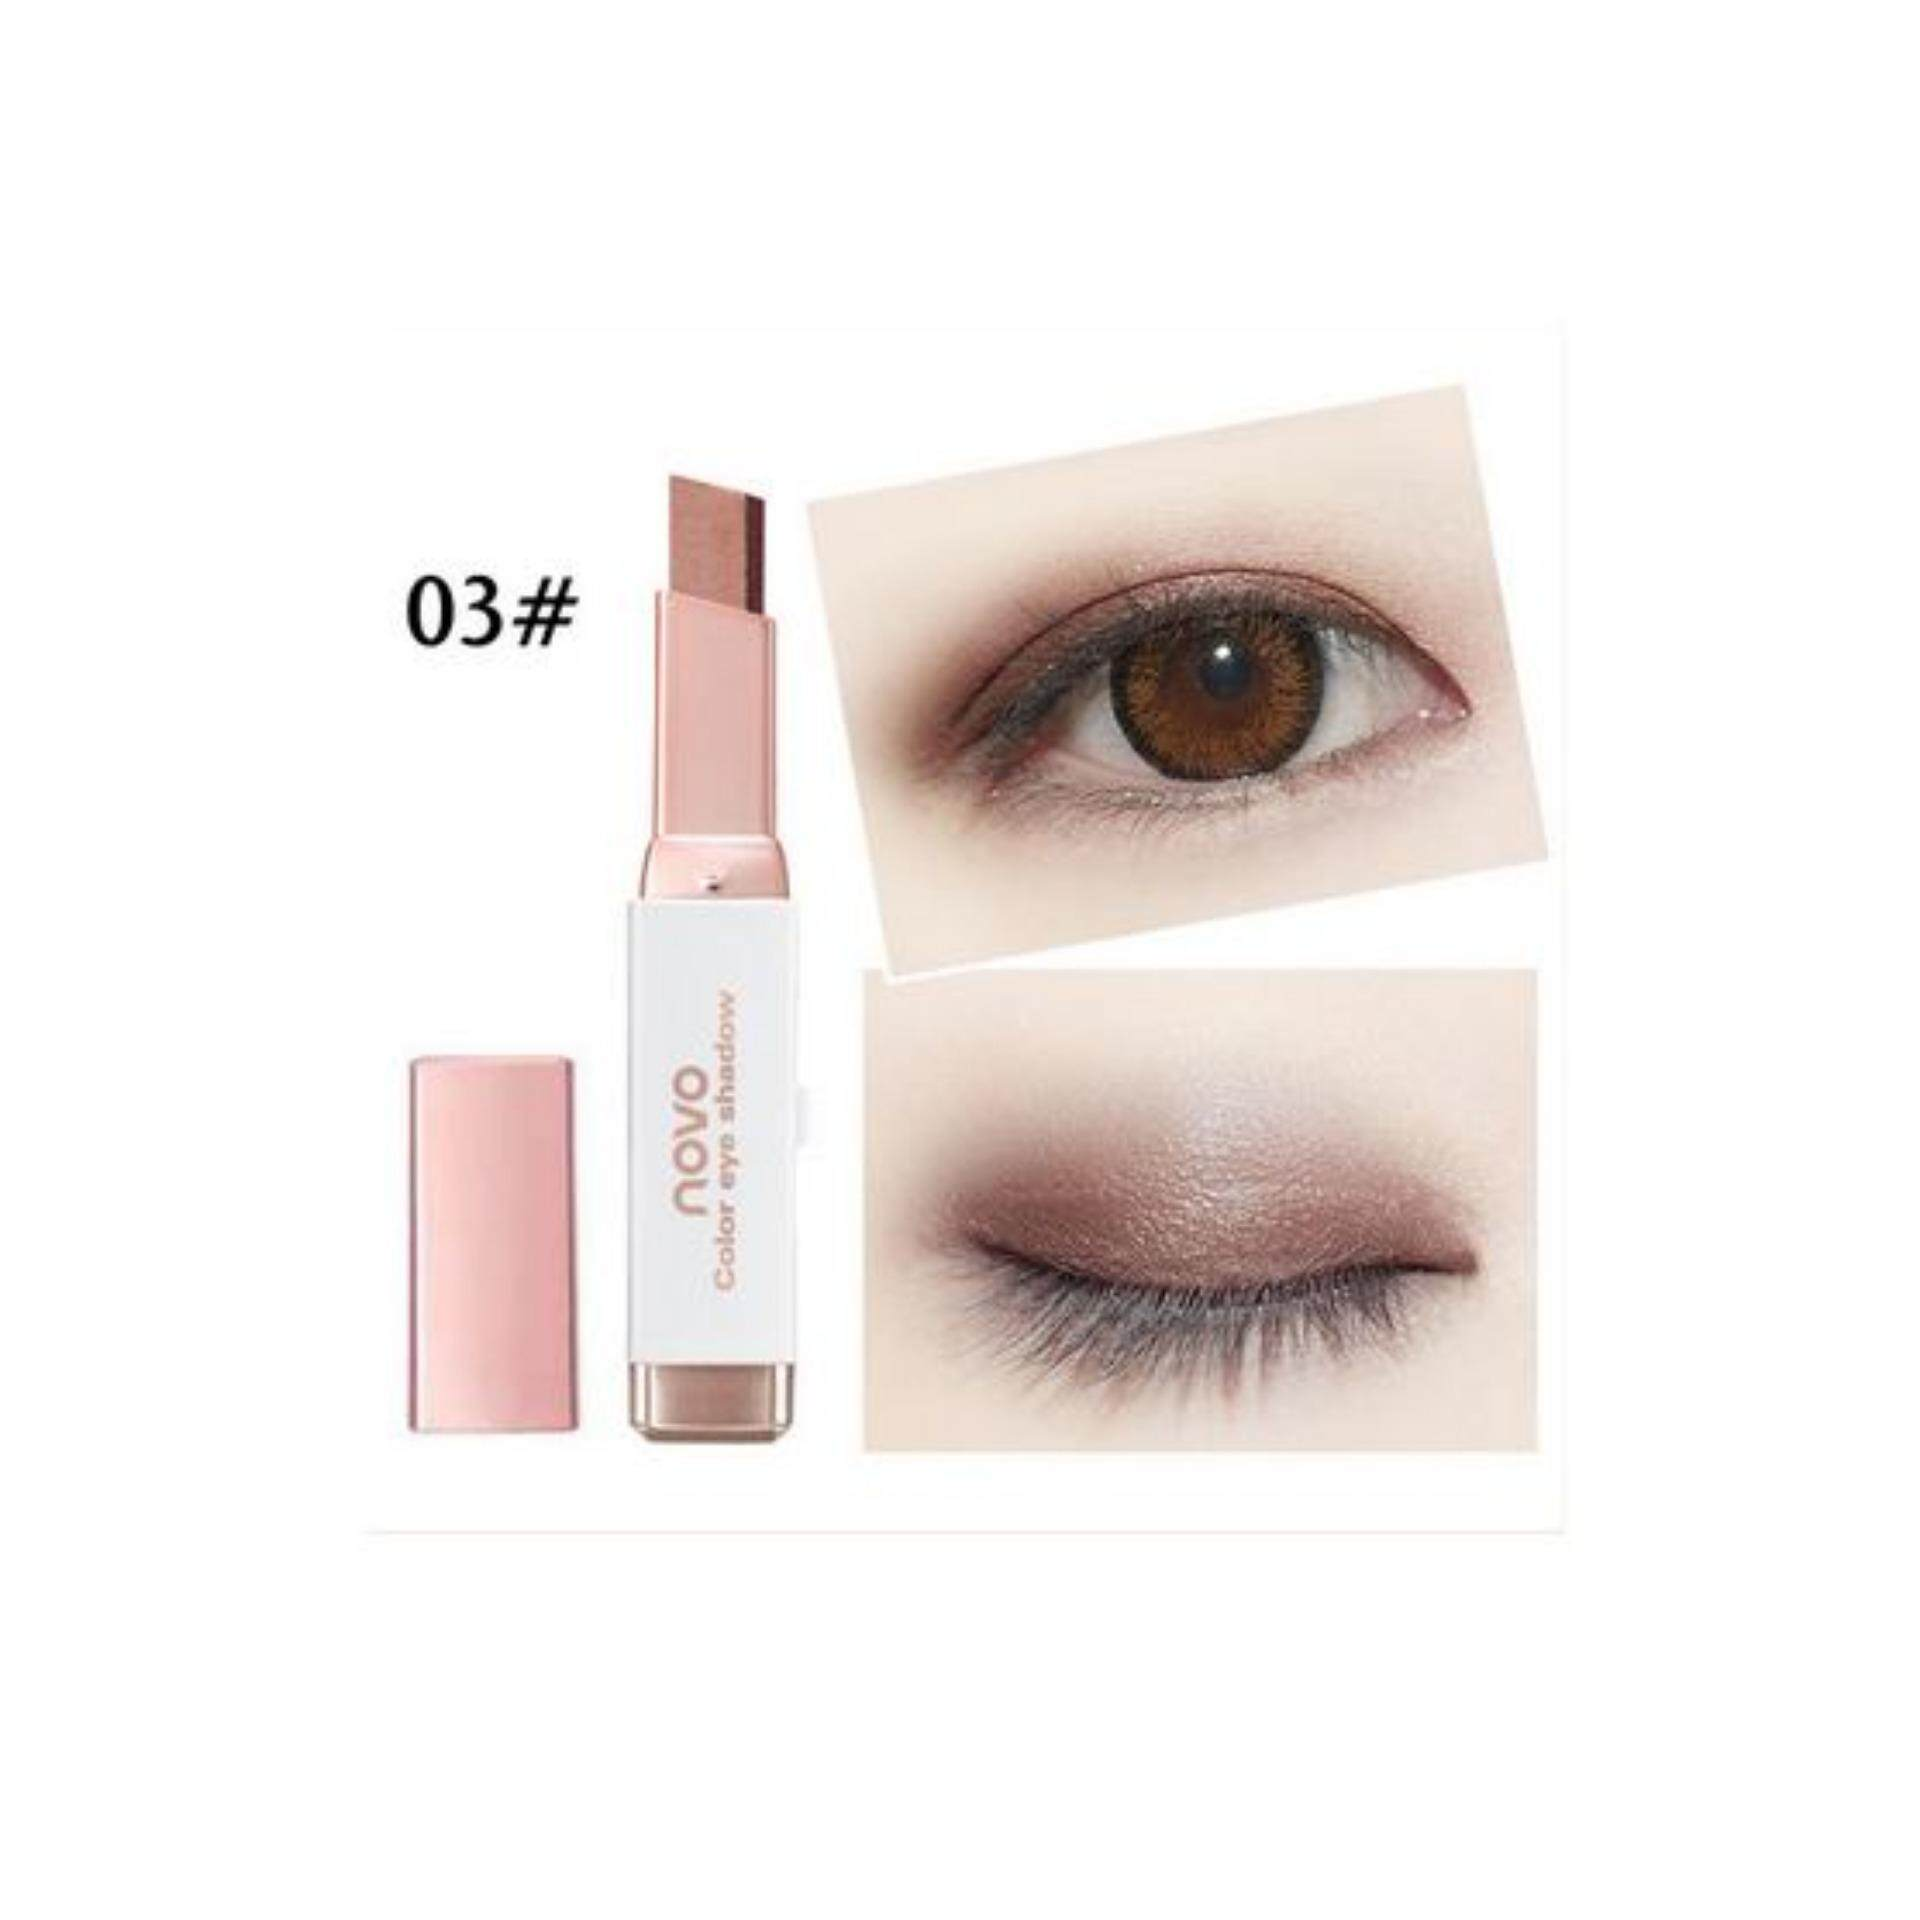 Novo 2Tone eyeshadow #03